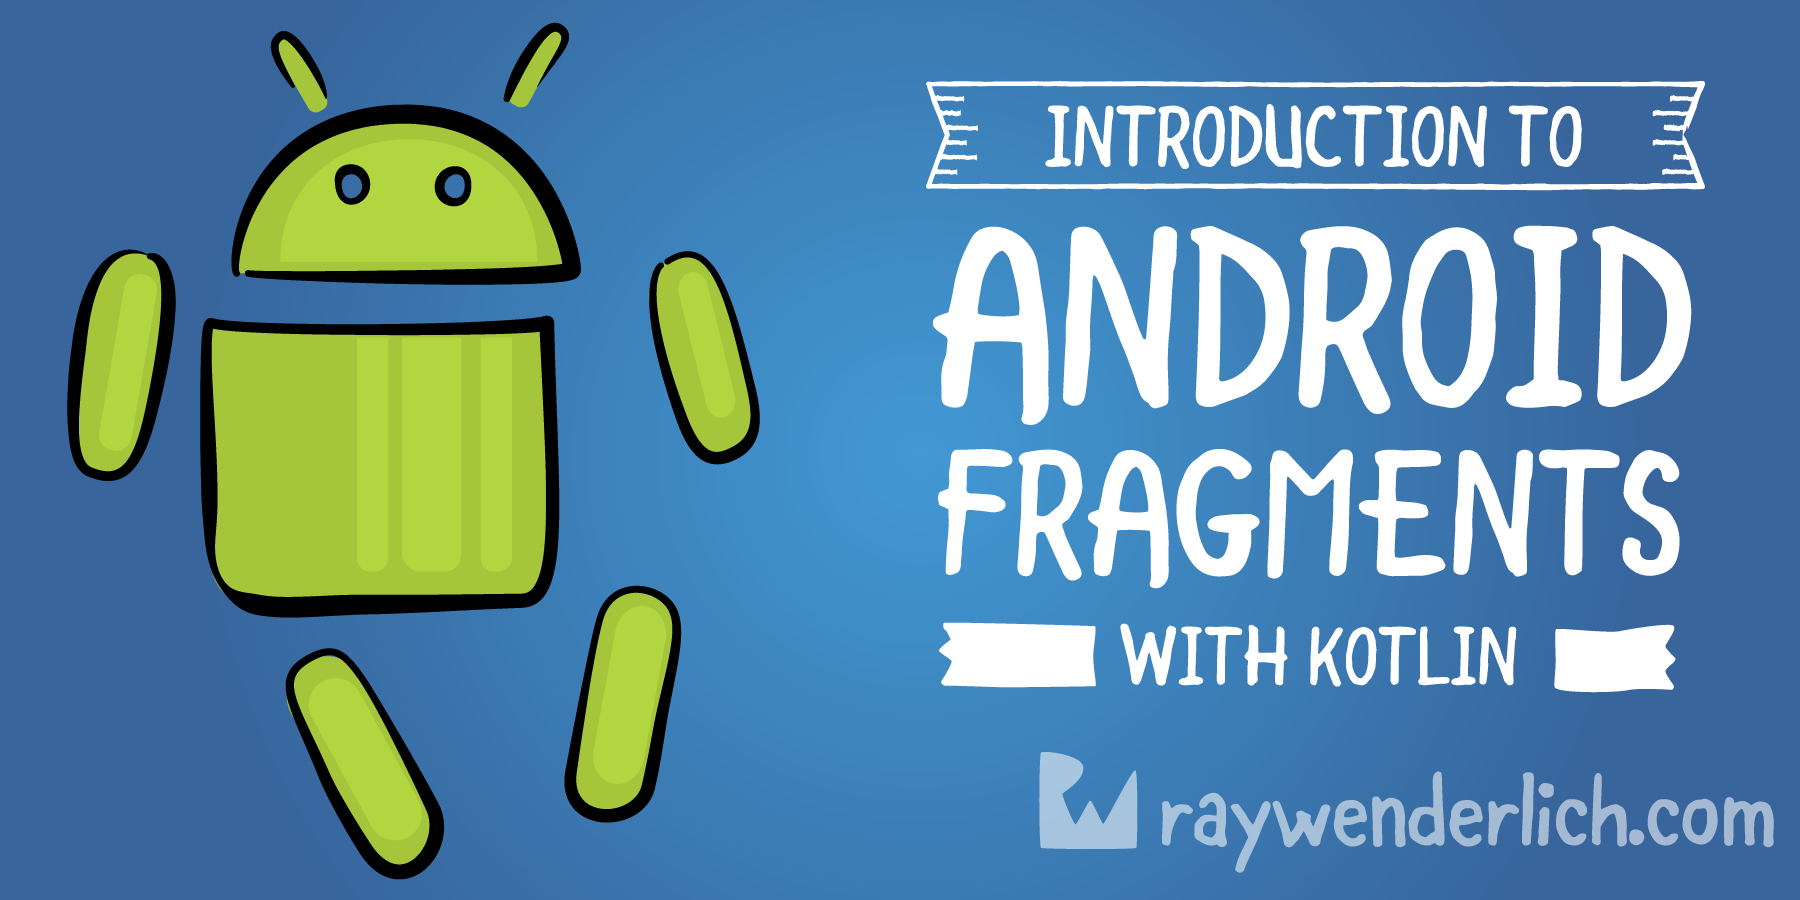 Android Fragments Tutorial: An Introduction with Kotlin